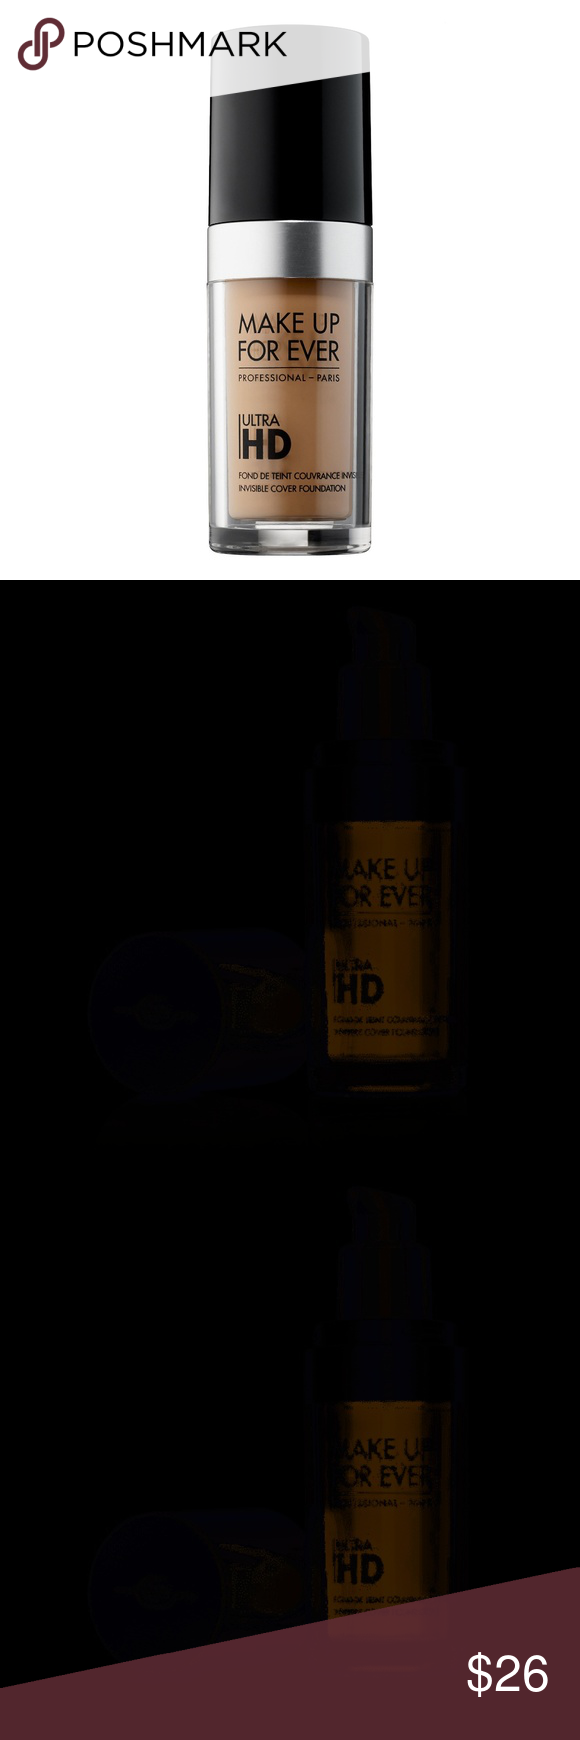 Make Up For Ever Ultra HD Liquid Foundation Y335 Make Up